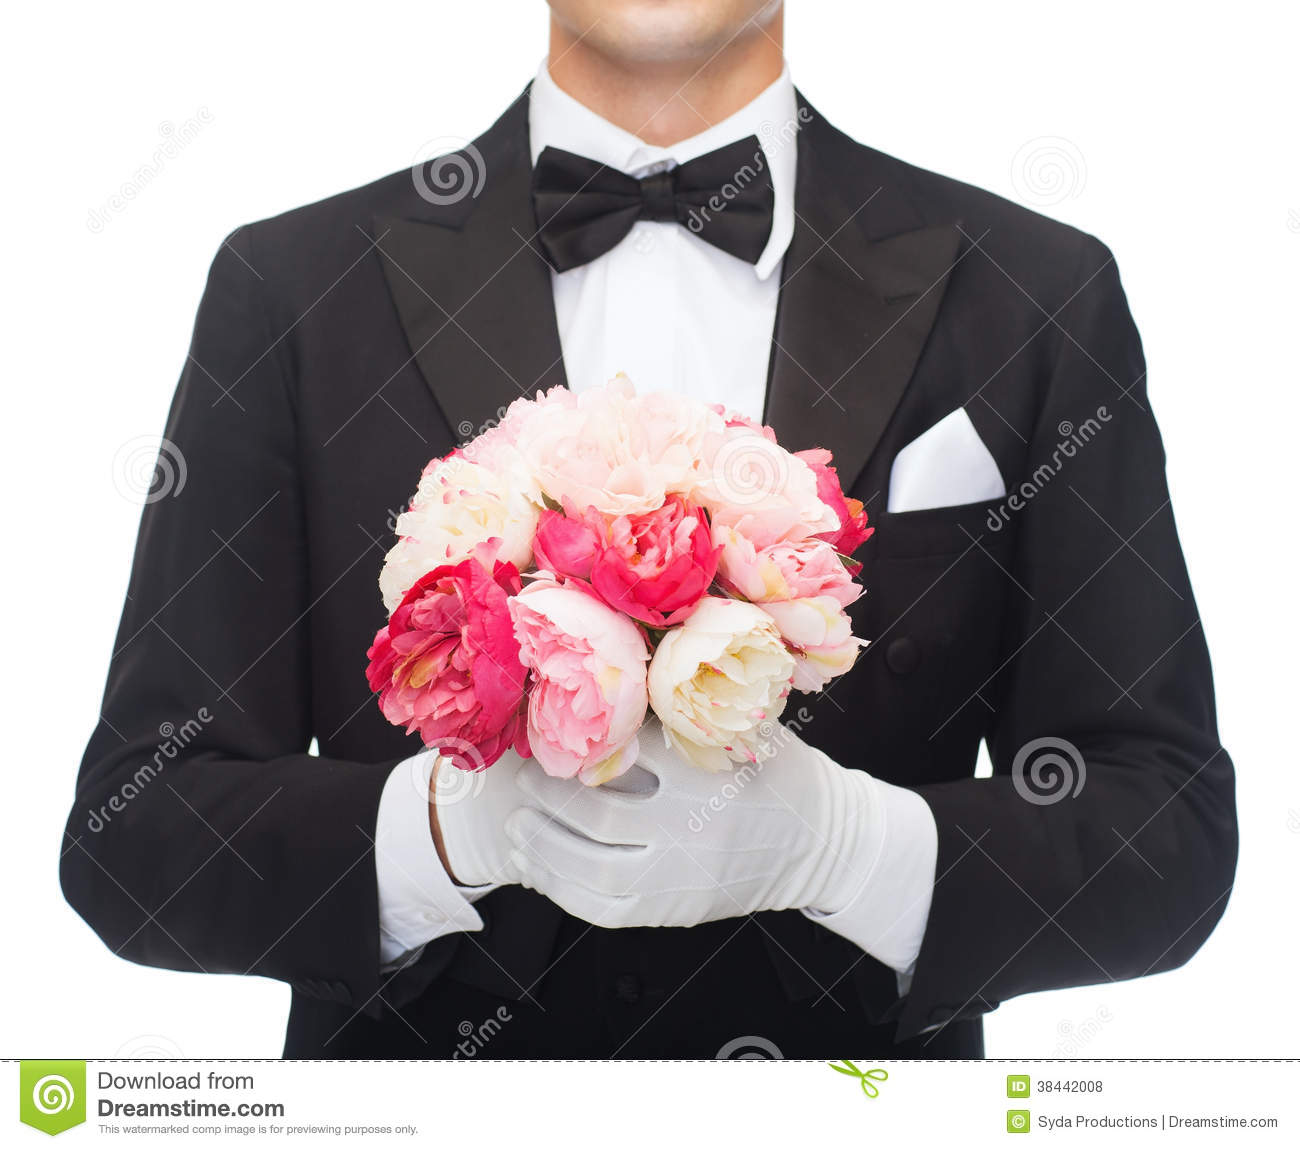 Man in tail coat with flower bouquet royalty free stock for Bouquet de fleurs homme